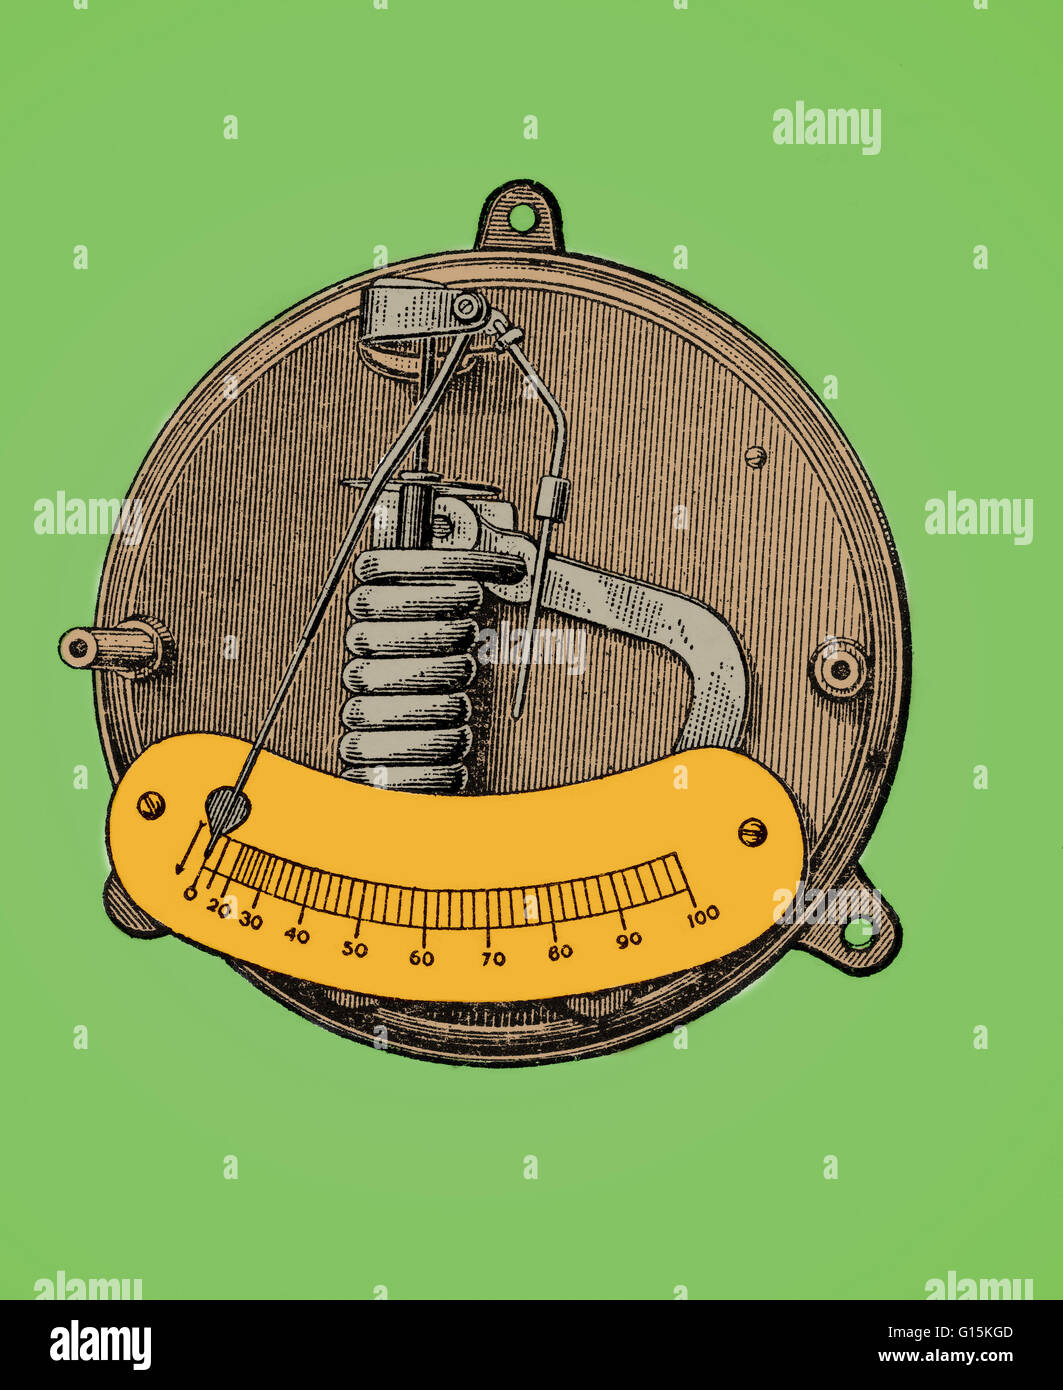 Instrument Current Electricity : Ammeter stock photos images alamy